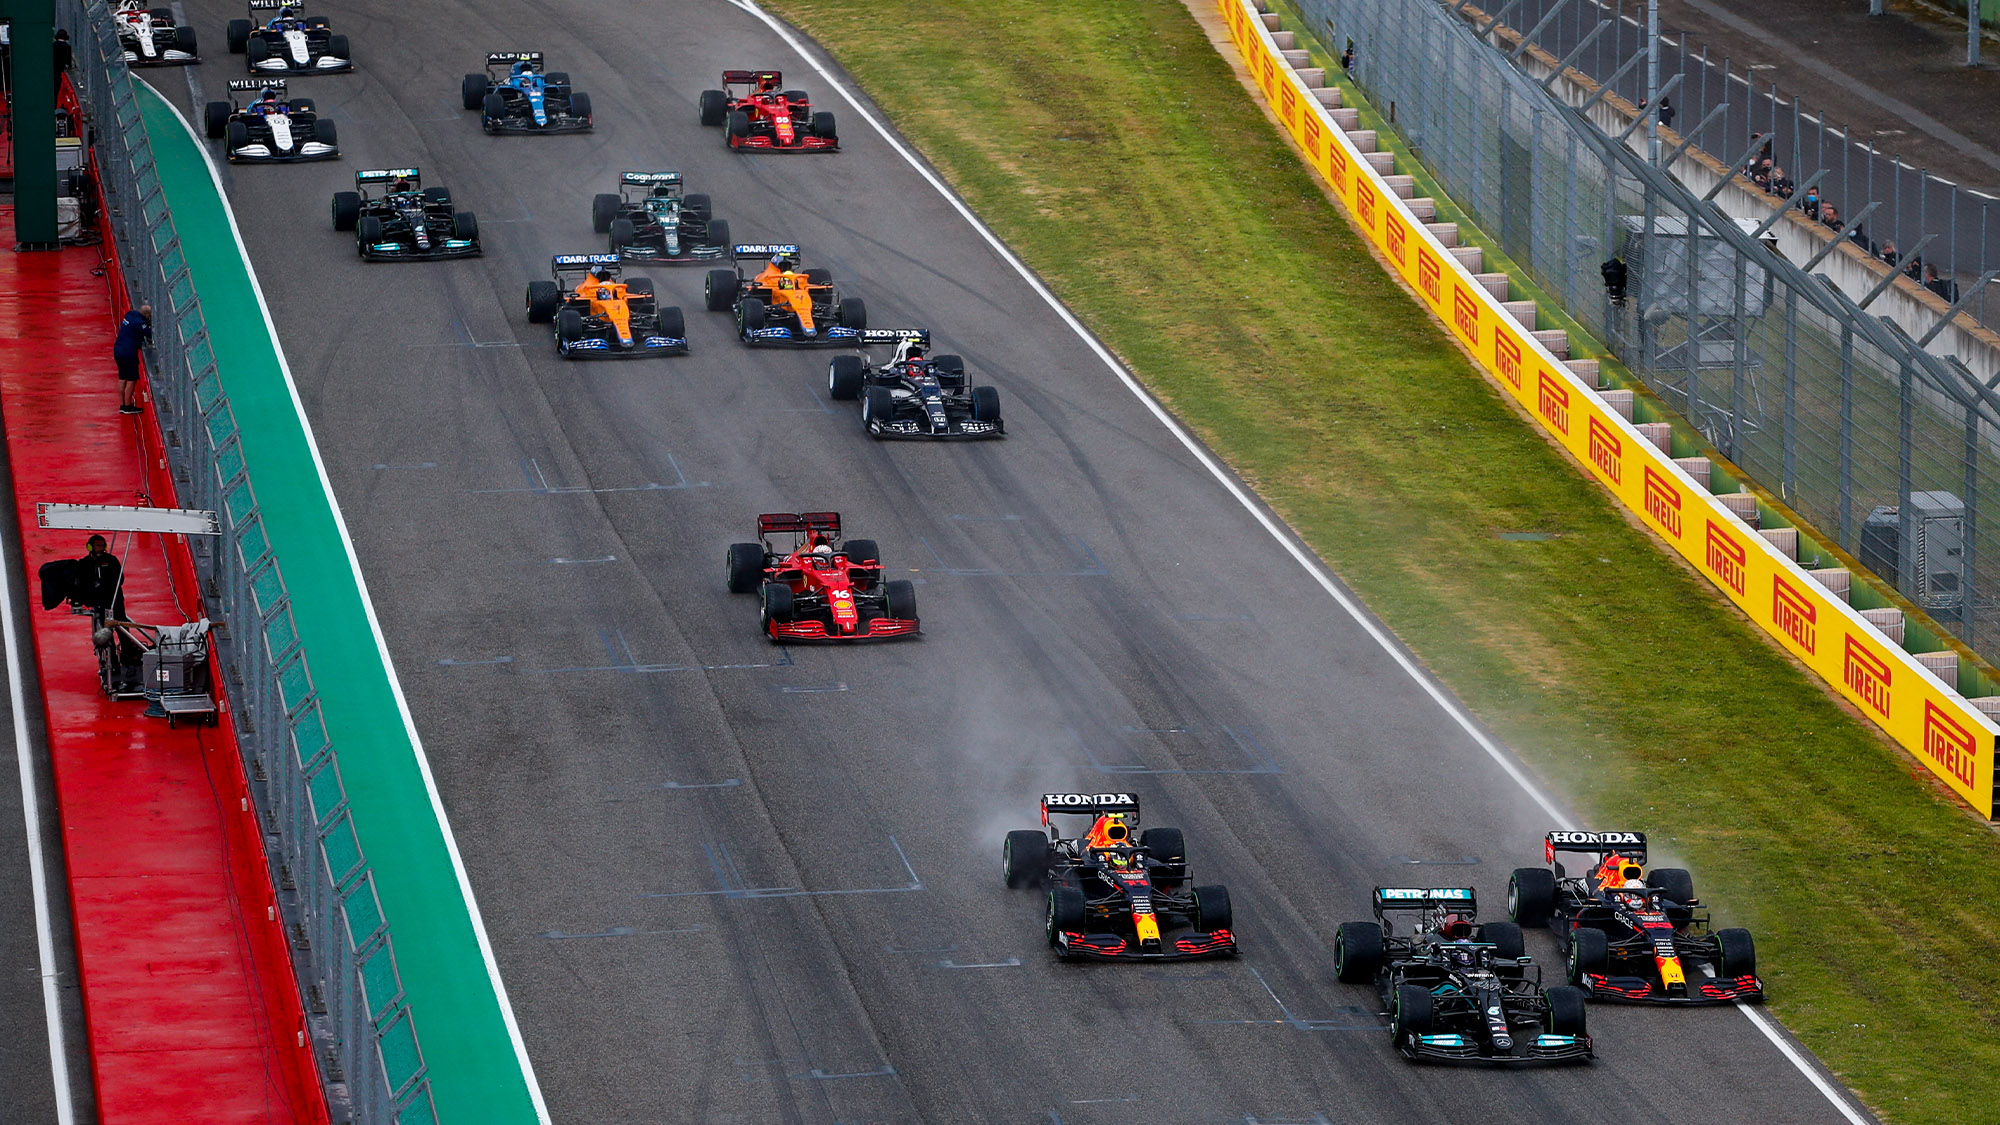 Lewis Hamilton leads briefly at the start of the 2021 Emilia Romagna Grand Prix